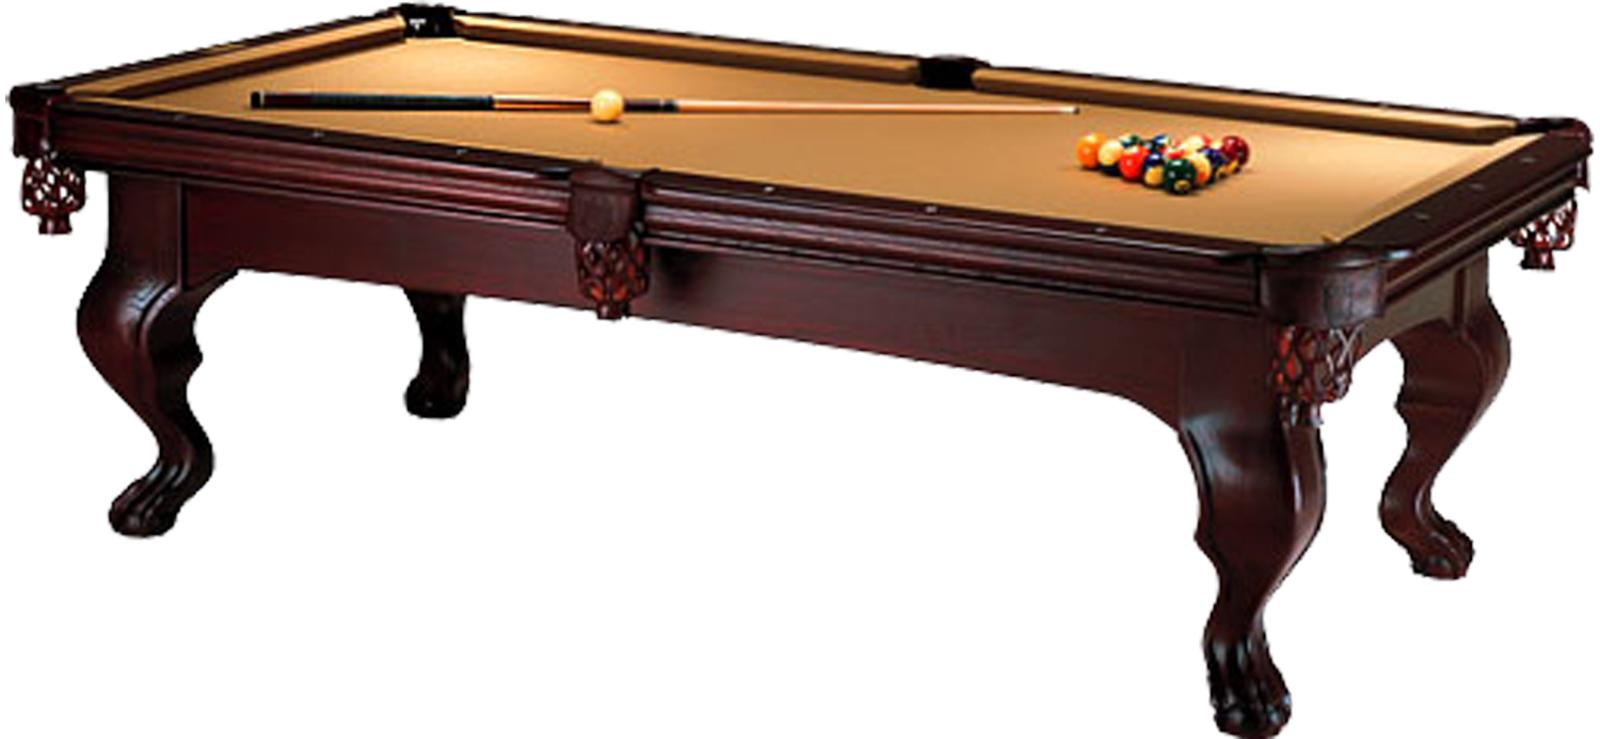 Used pool tables for sale pro billiards autos post - Pool table supplies near me ...